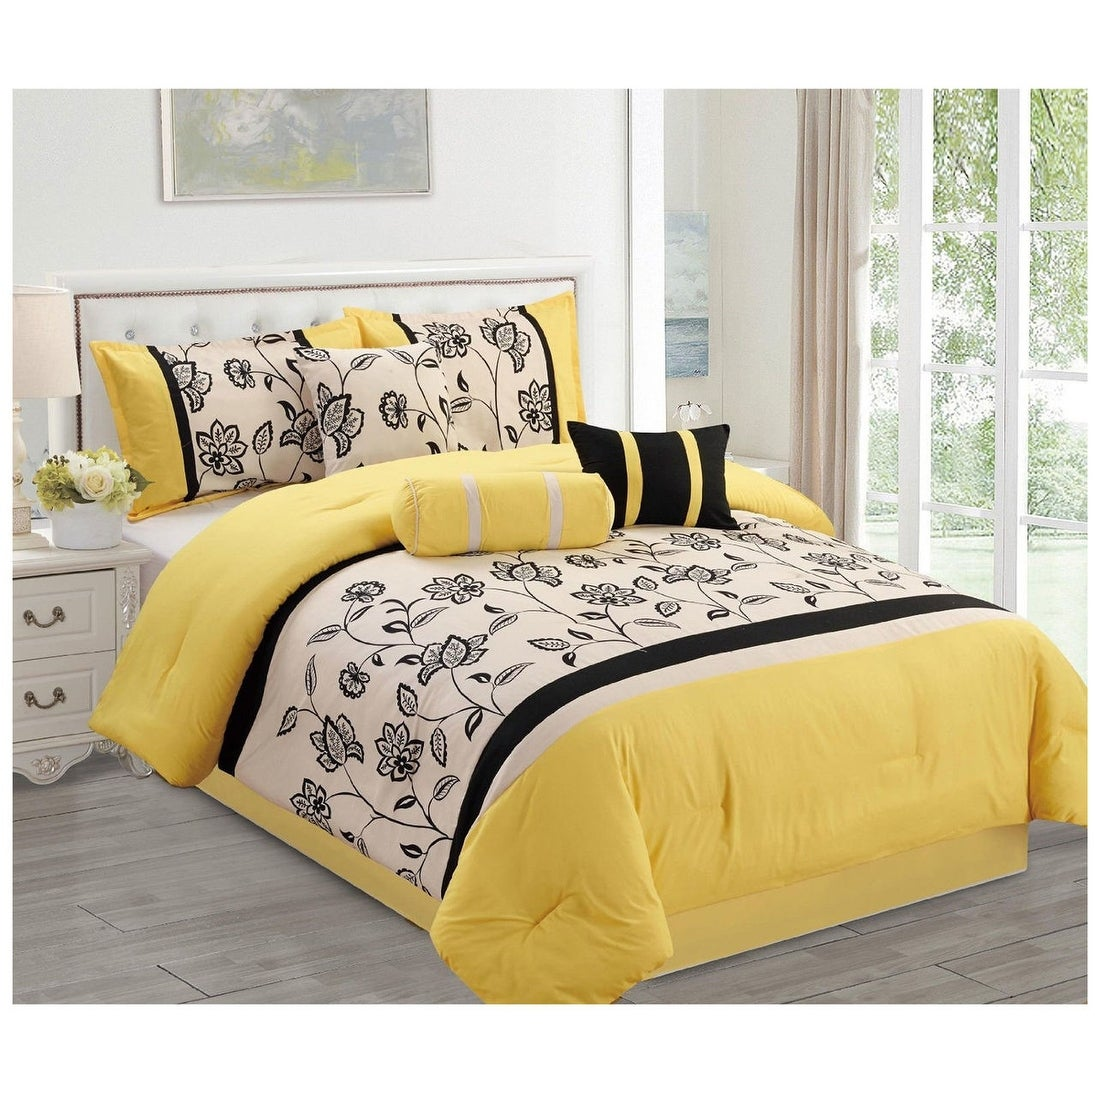 7 Pc Luxury Queen King Comforter Set Yellow Black Modern Contemporary Floral With Shams Overstock 12020887